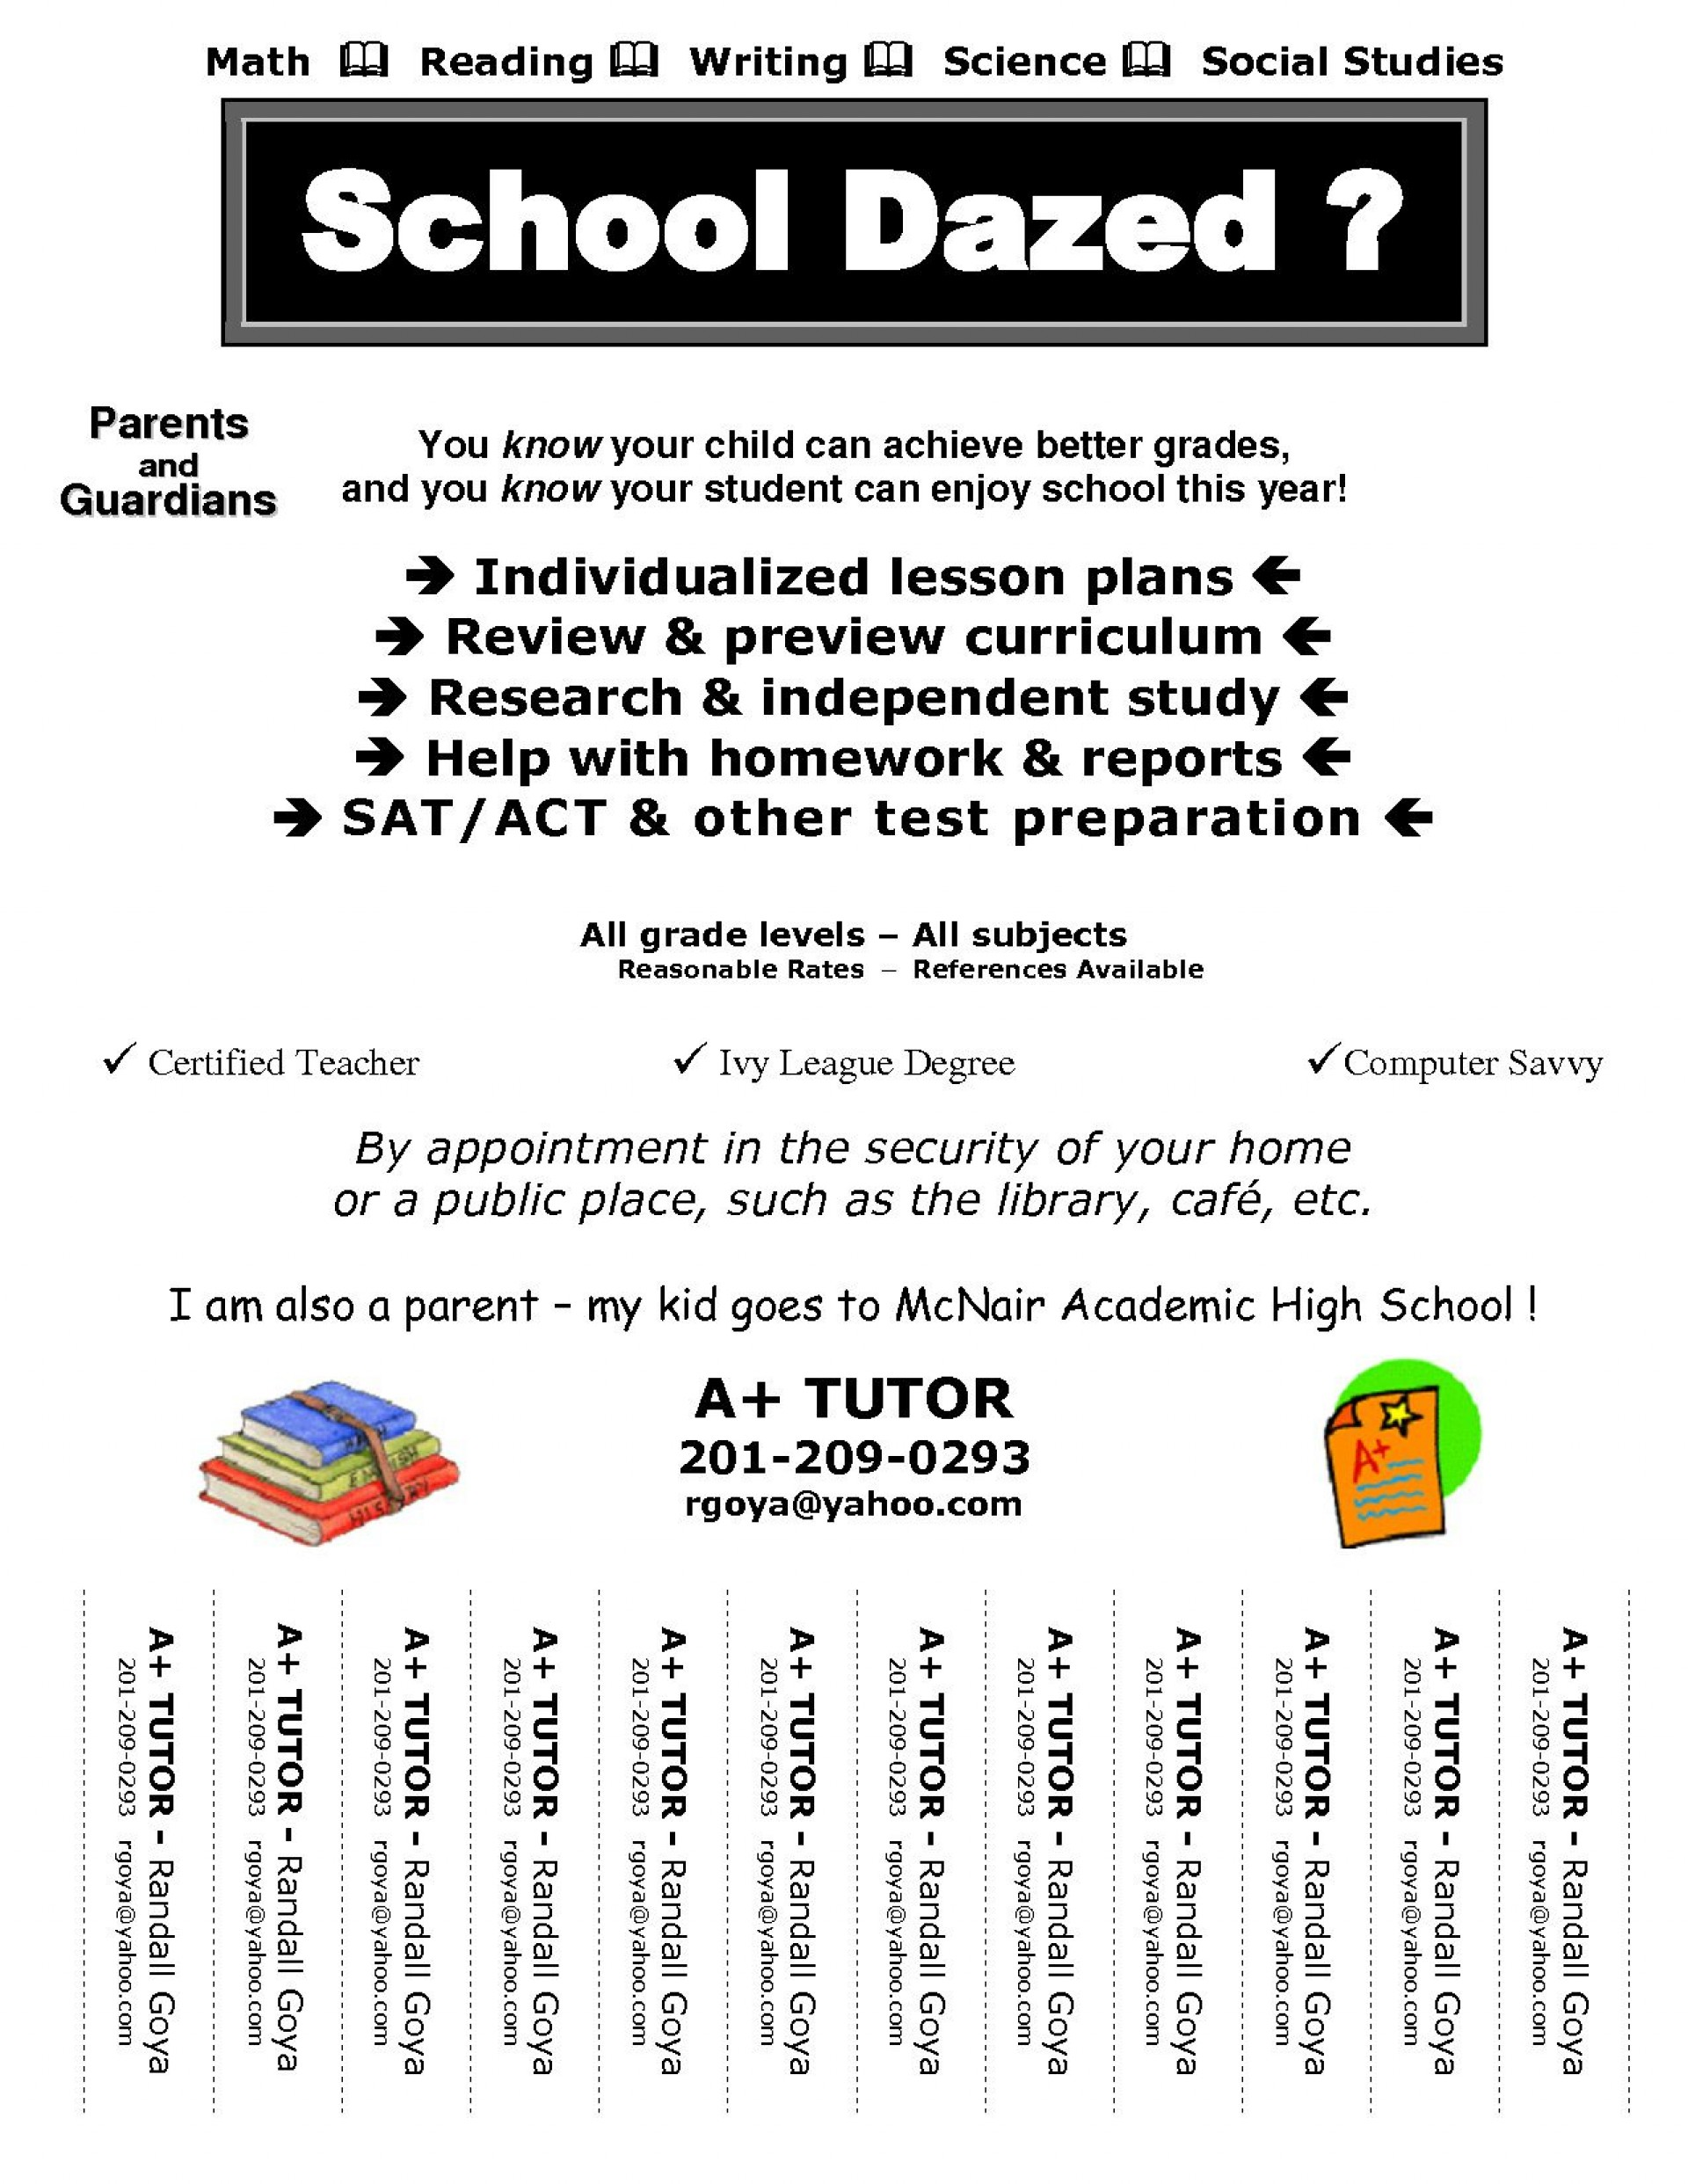 005 Awful Tutoring Flyer Template Free Example  Word Math1920